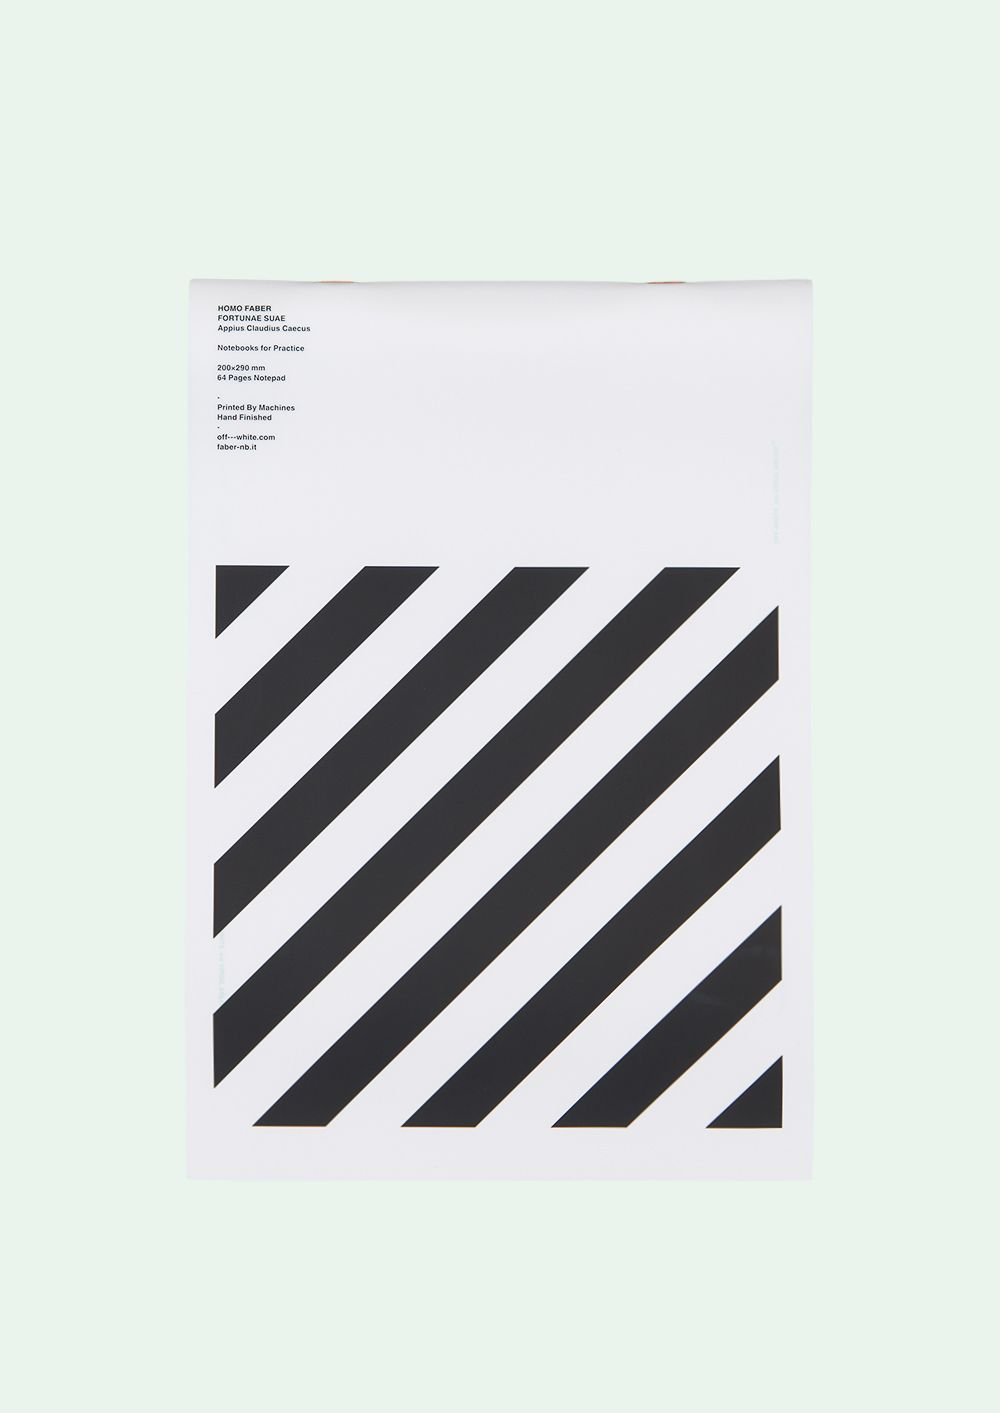 Off White Accessory Offwhite Typography Logo Typography Miami Design